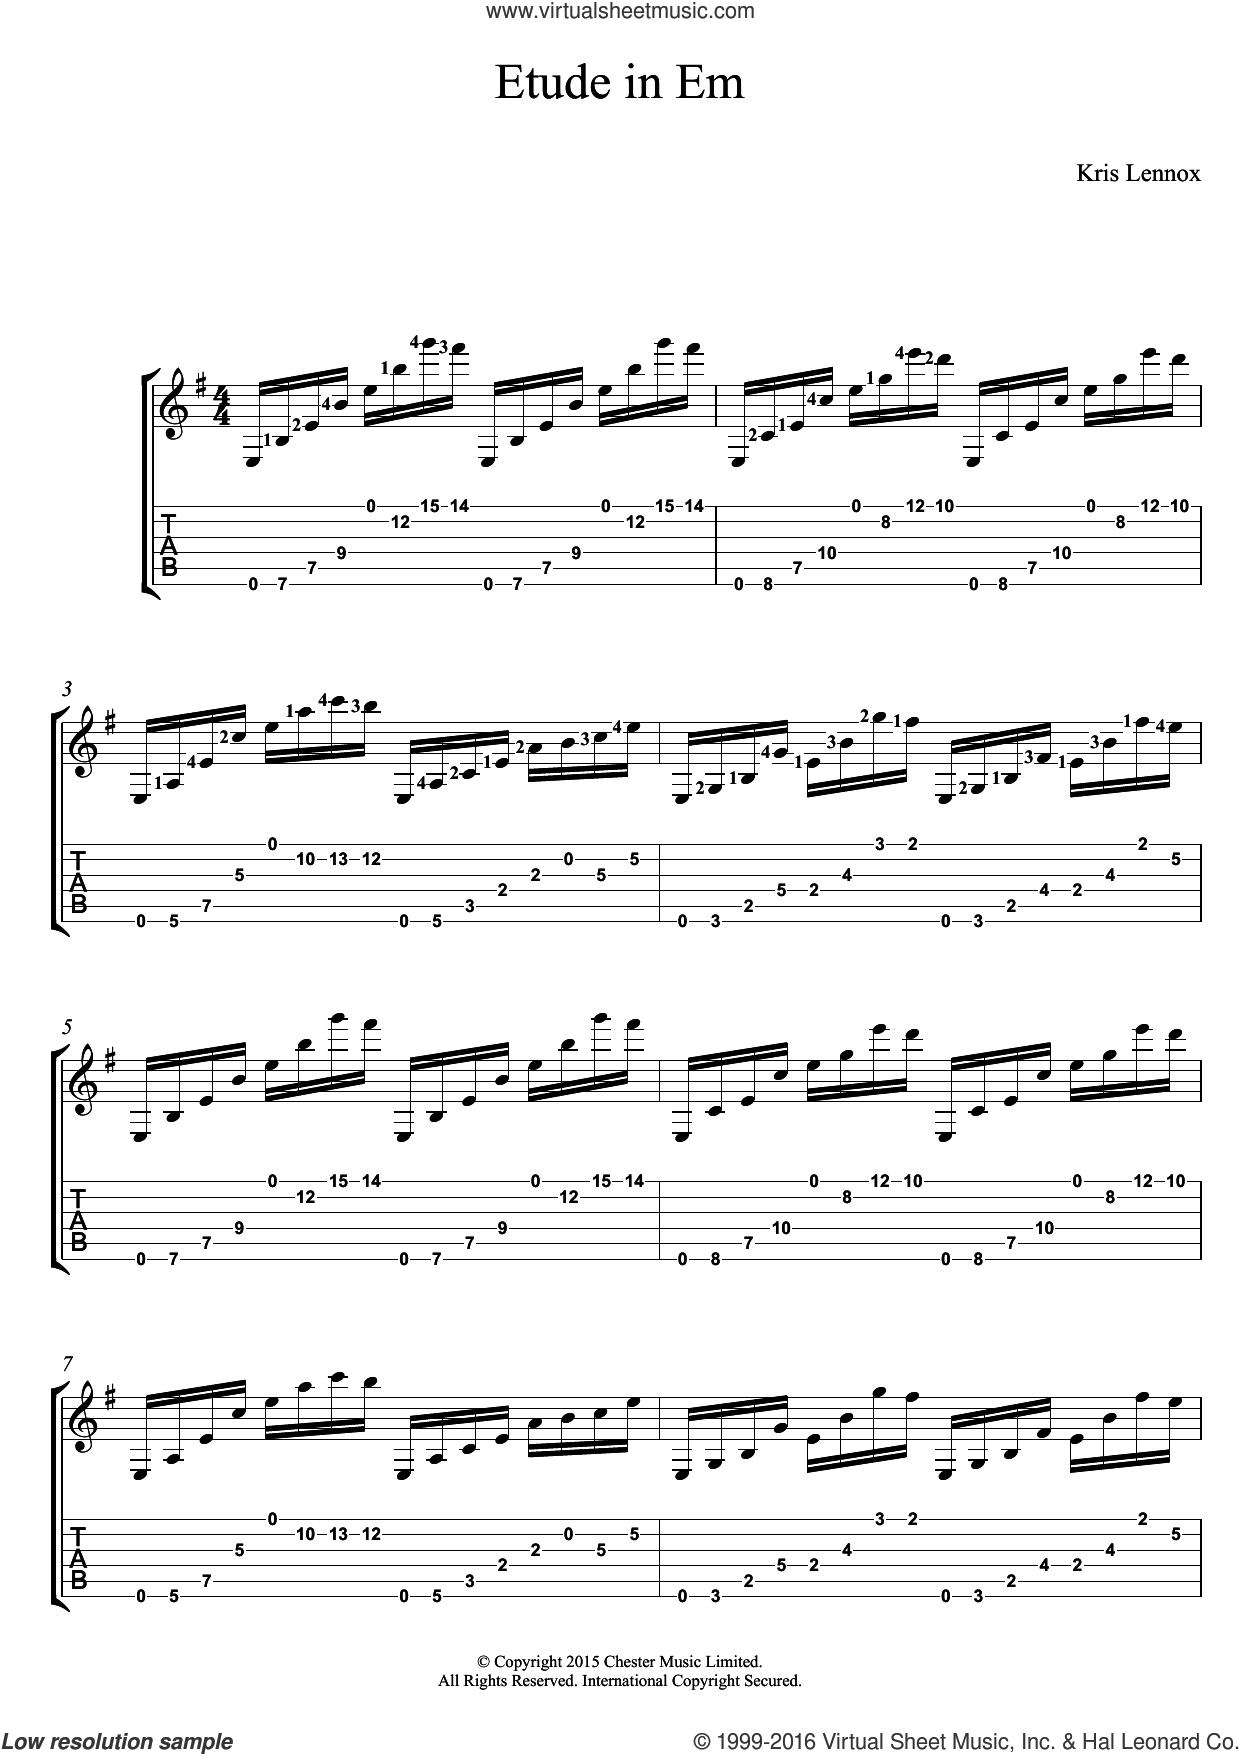 Etude In Em sheet music for guitar (tablature) by Kris Lennox. Score Image Preview.